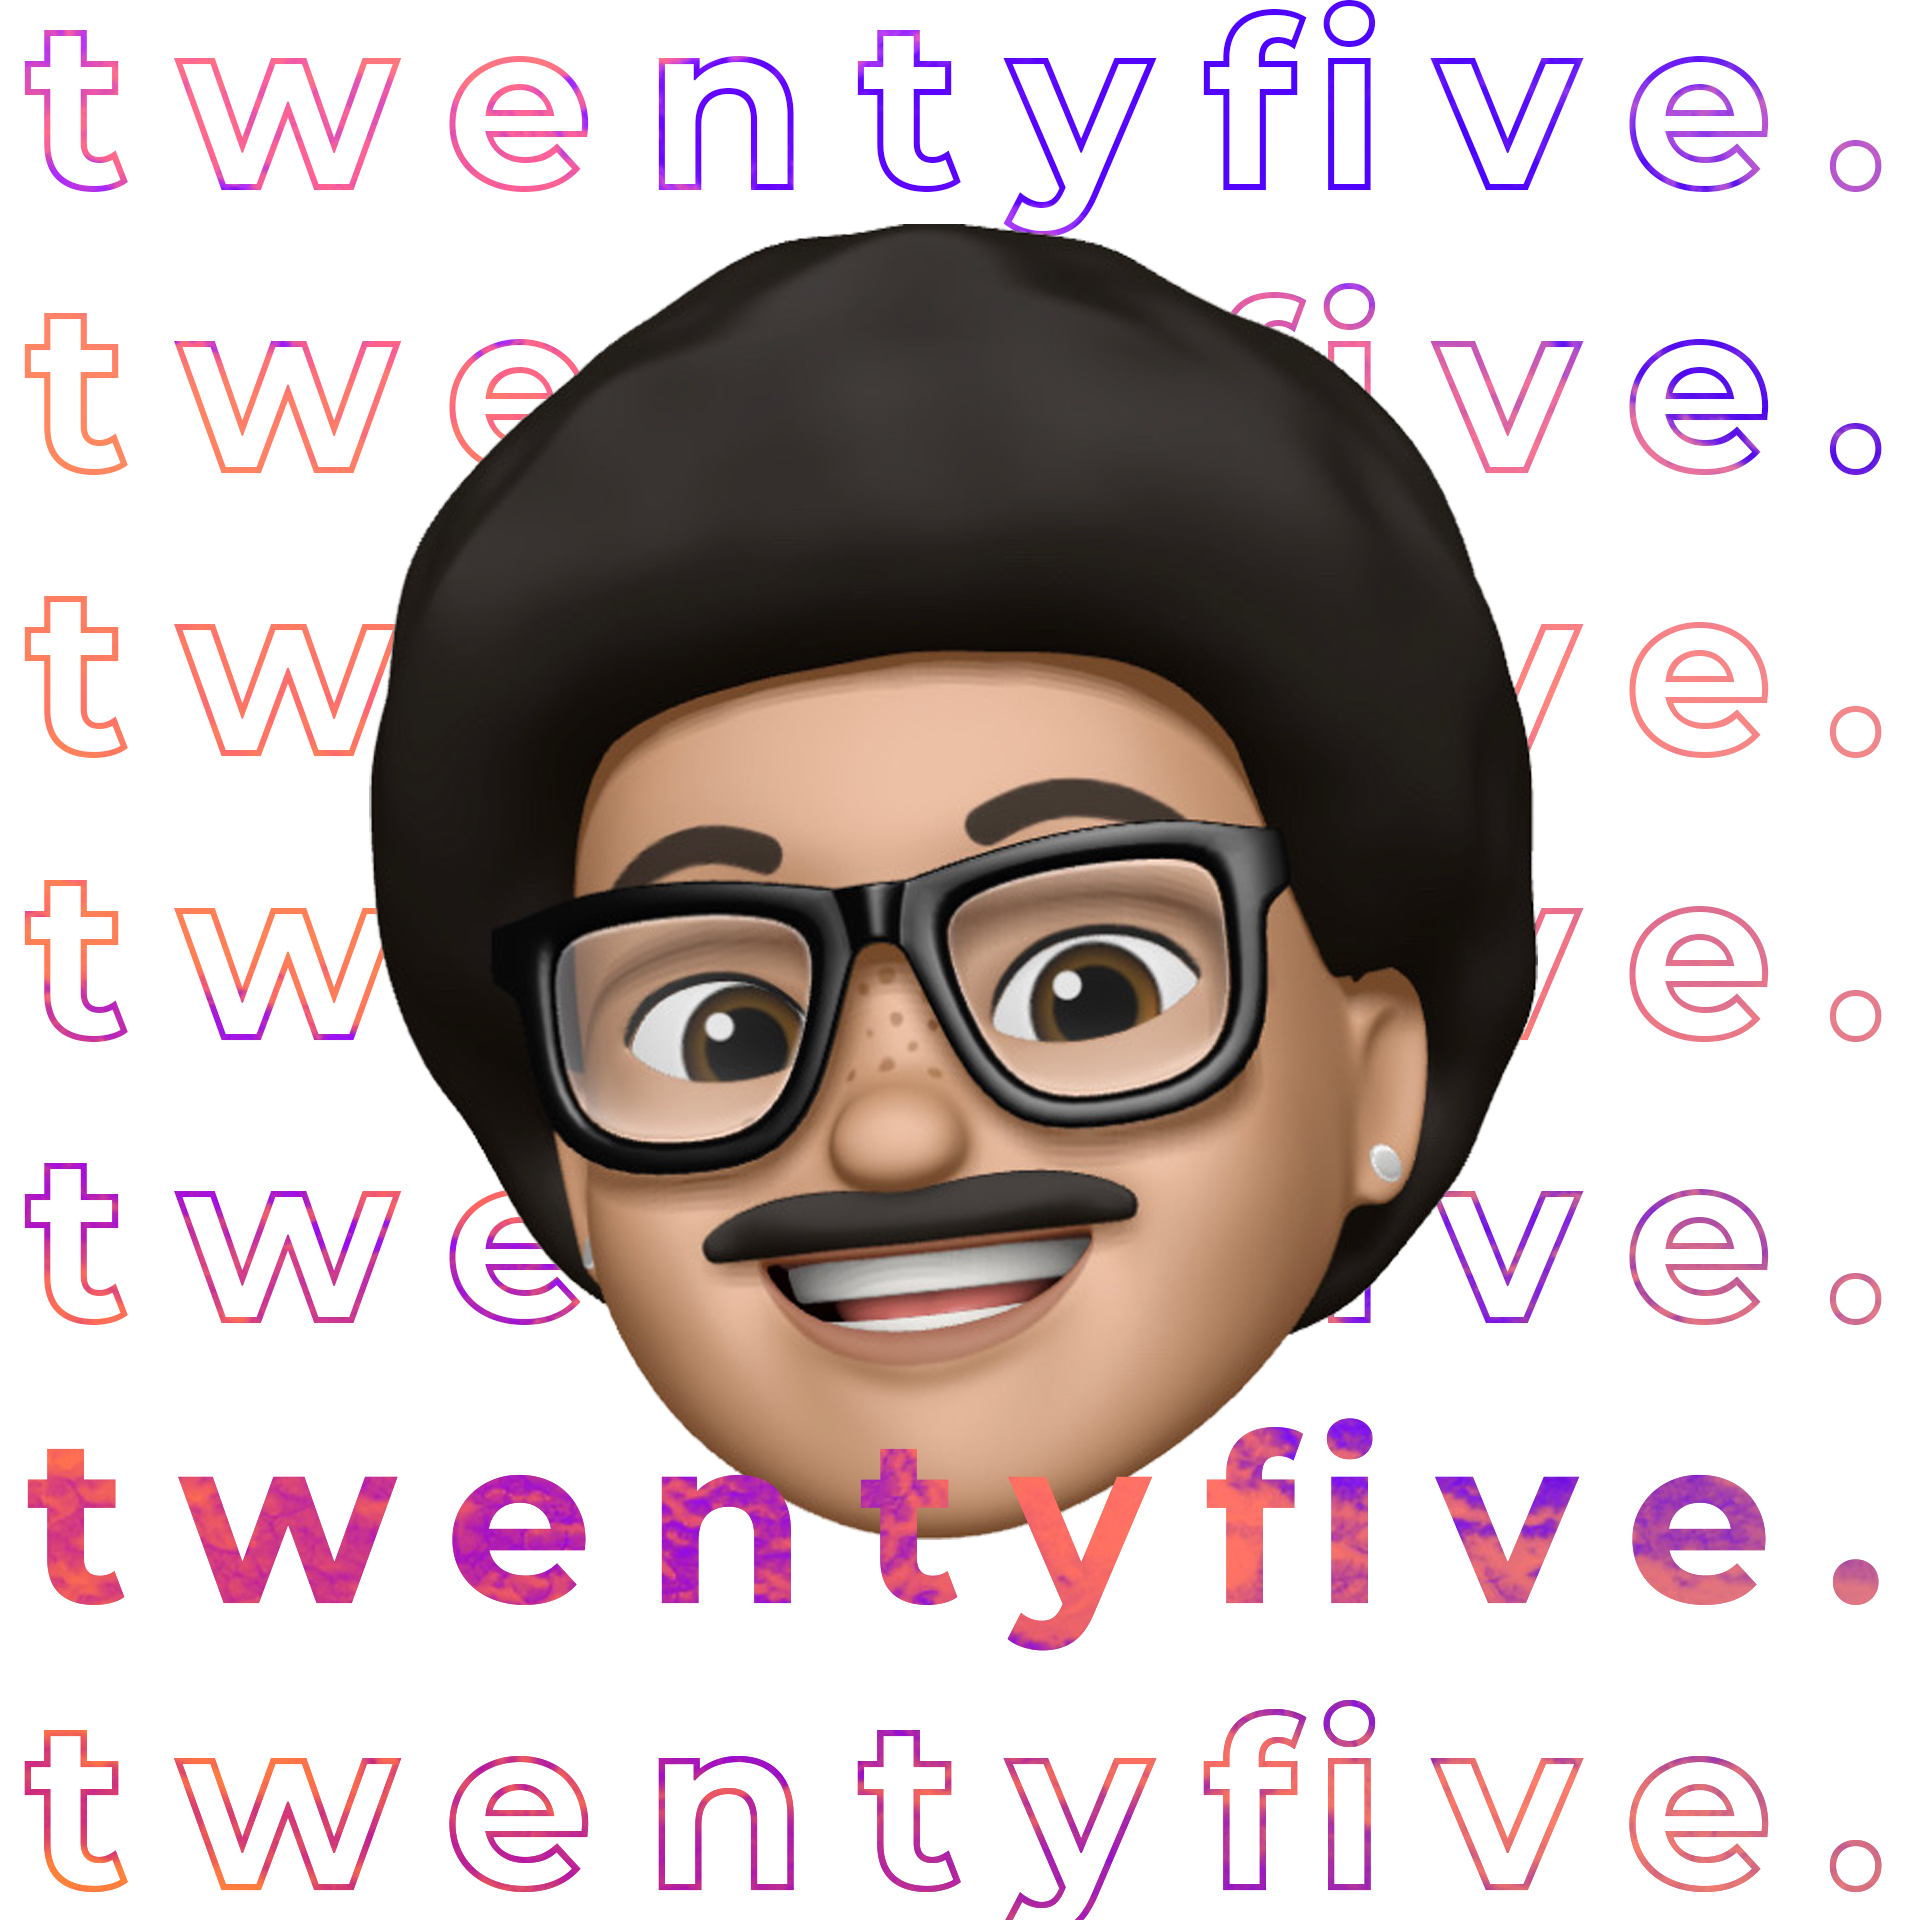 twentyfive. art.jpg